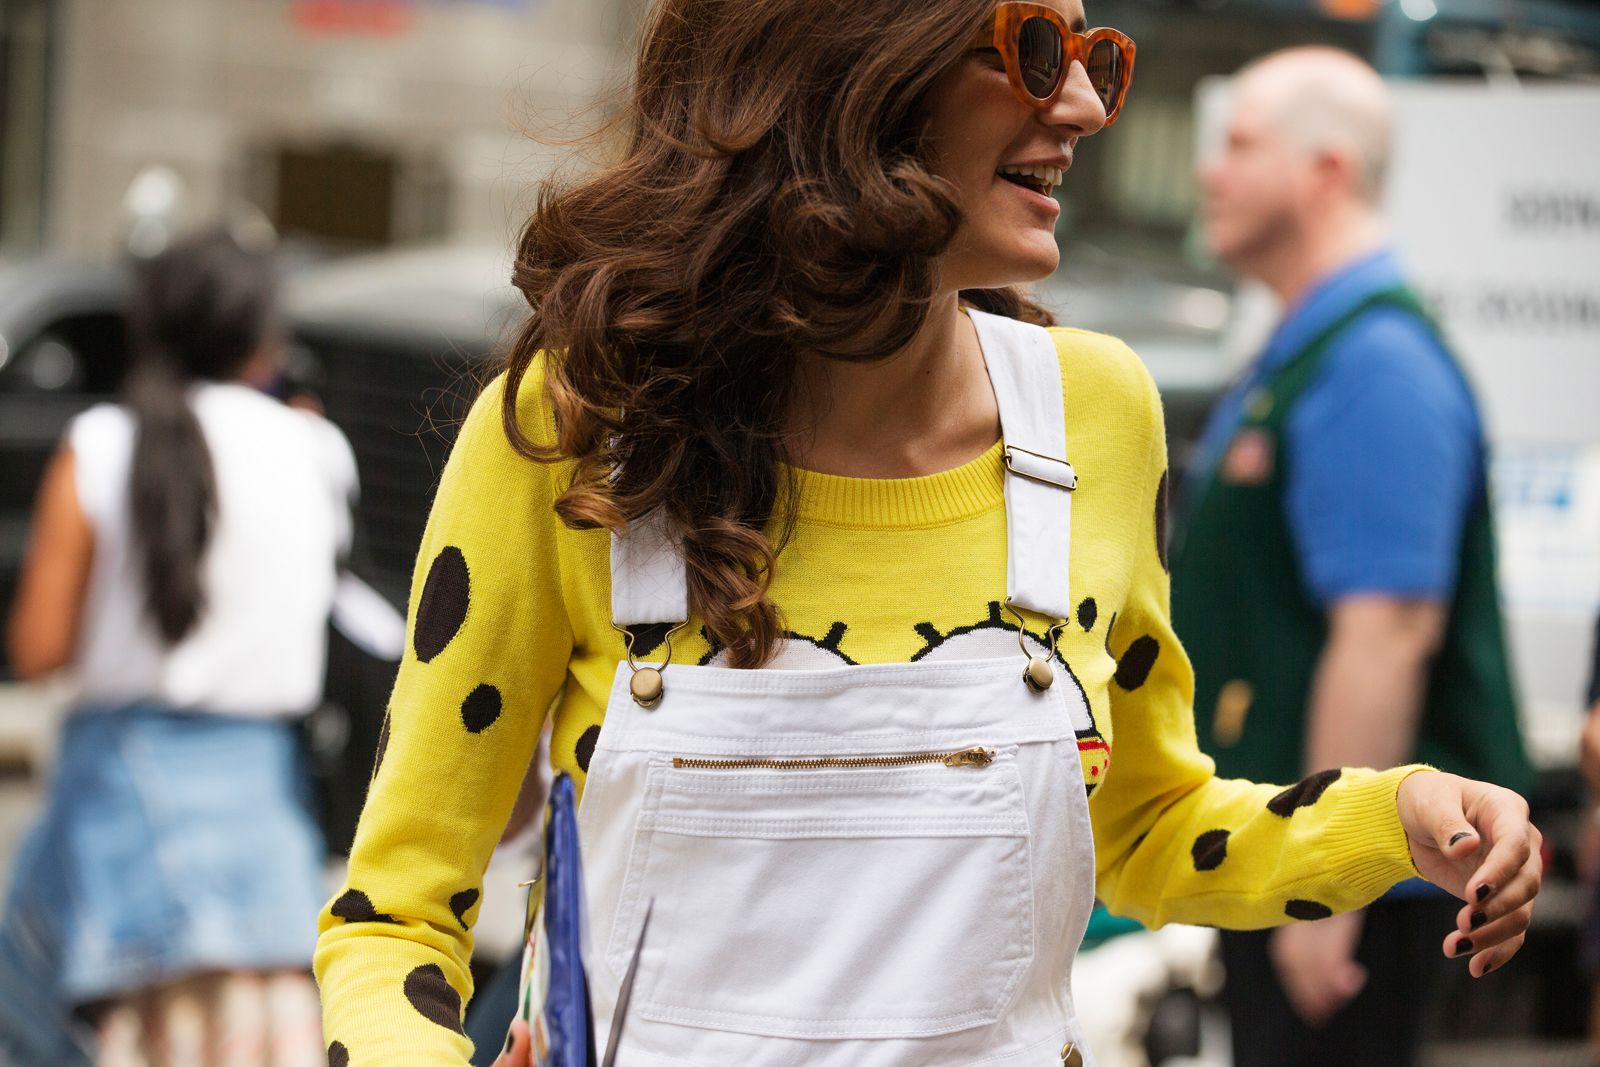 The NYFW Street Style Looks That Truly Stunned #refinery29  http://www.refinery29.com/2014/09/73987/new-york-fashion-week-2014-street-style-photos#slide51  Spongebob, undercover.